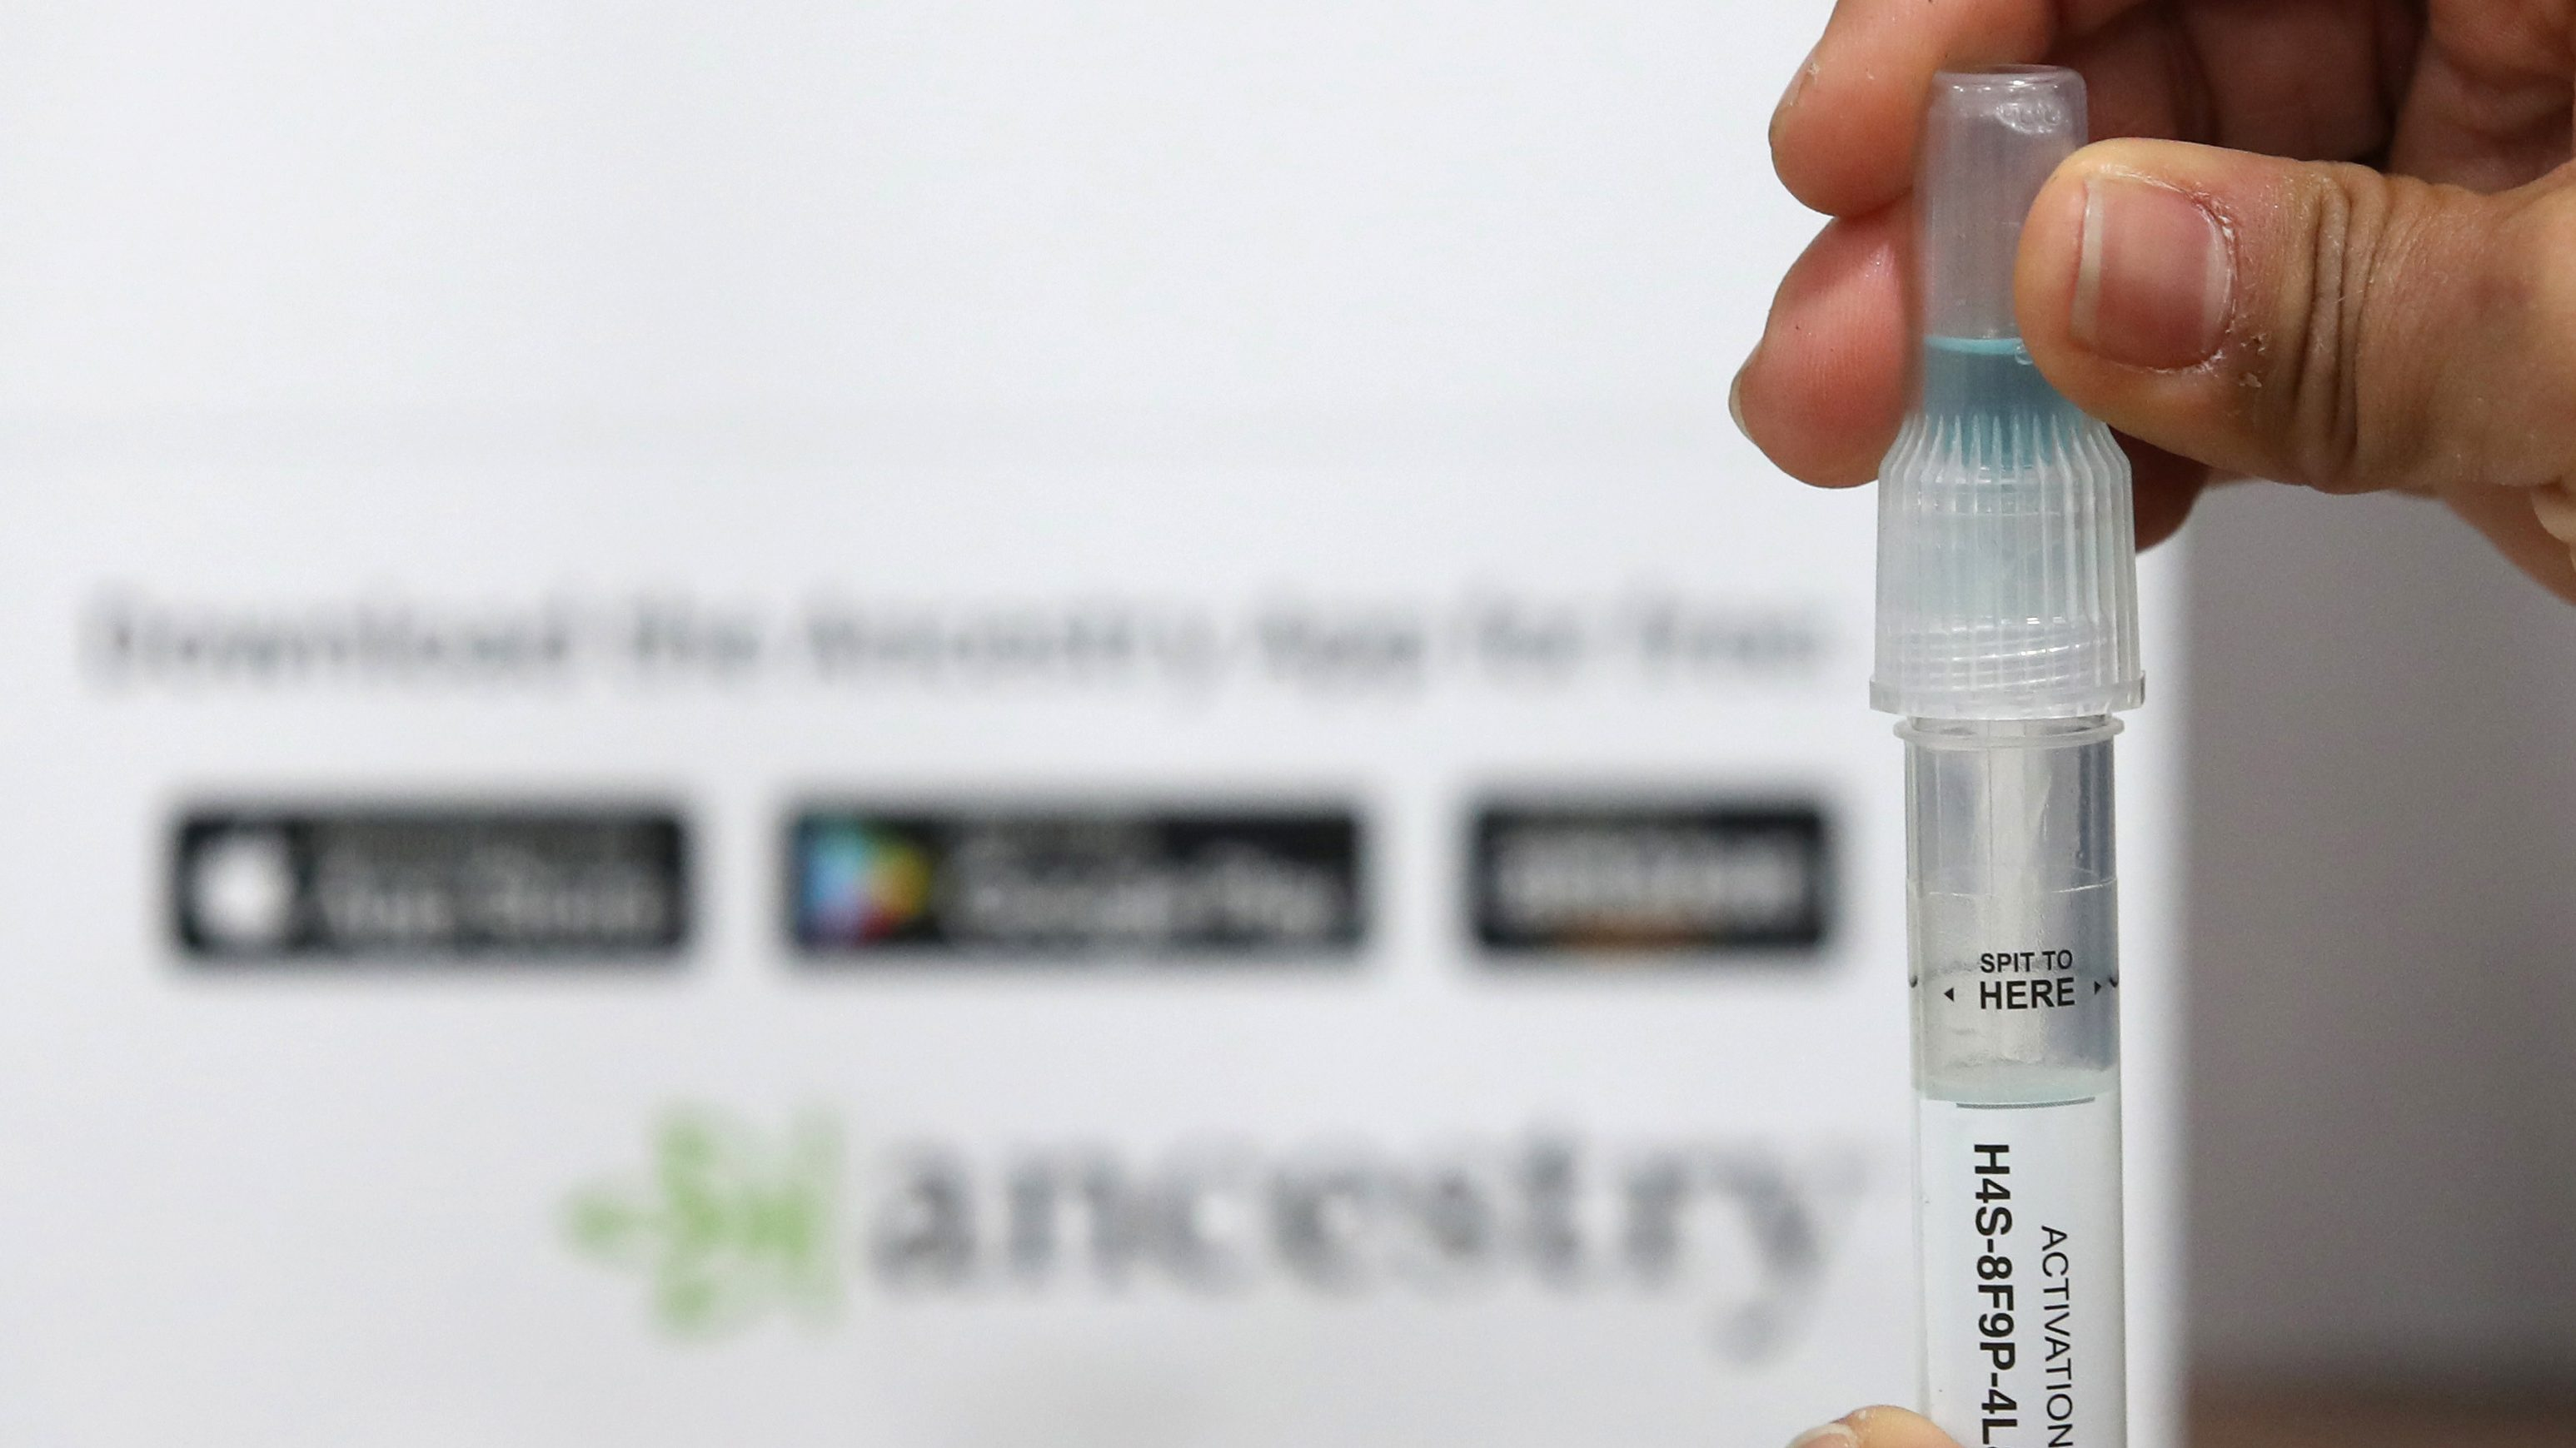 A vial of spit in front of the AncestryDNA logo